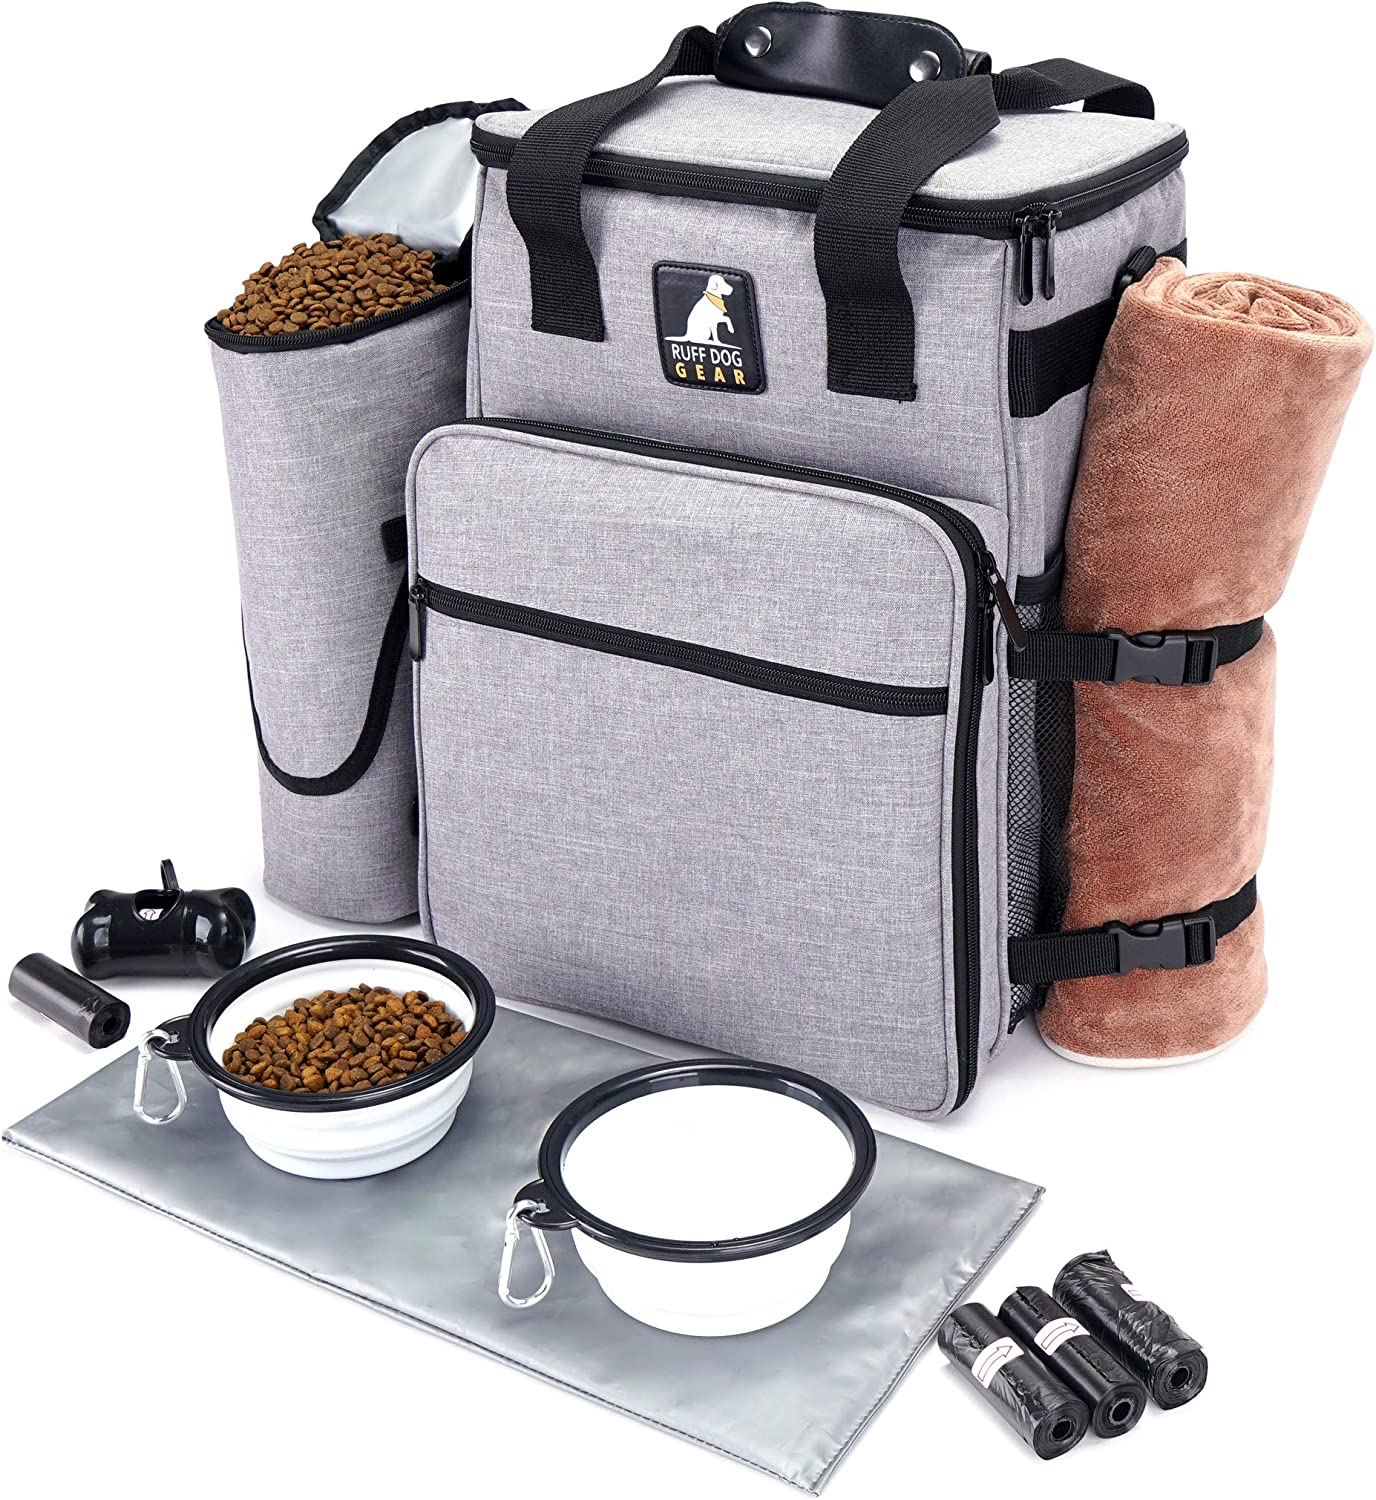 Ruff Dog Travel Bag for Supplies - Airline Approved Pet Travel Bag for Dog Accessories with 2 Collapsible Bowls, Food Container, Placemat, Poop Bags & Dispenser - Ideal Dogs Weekend Organizer (Grey)